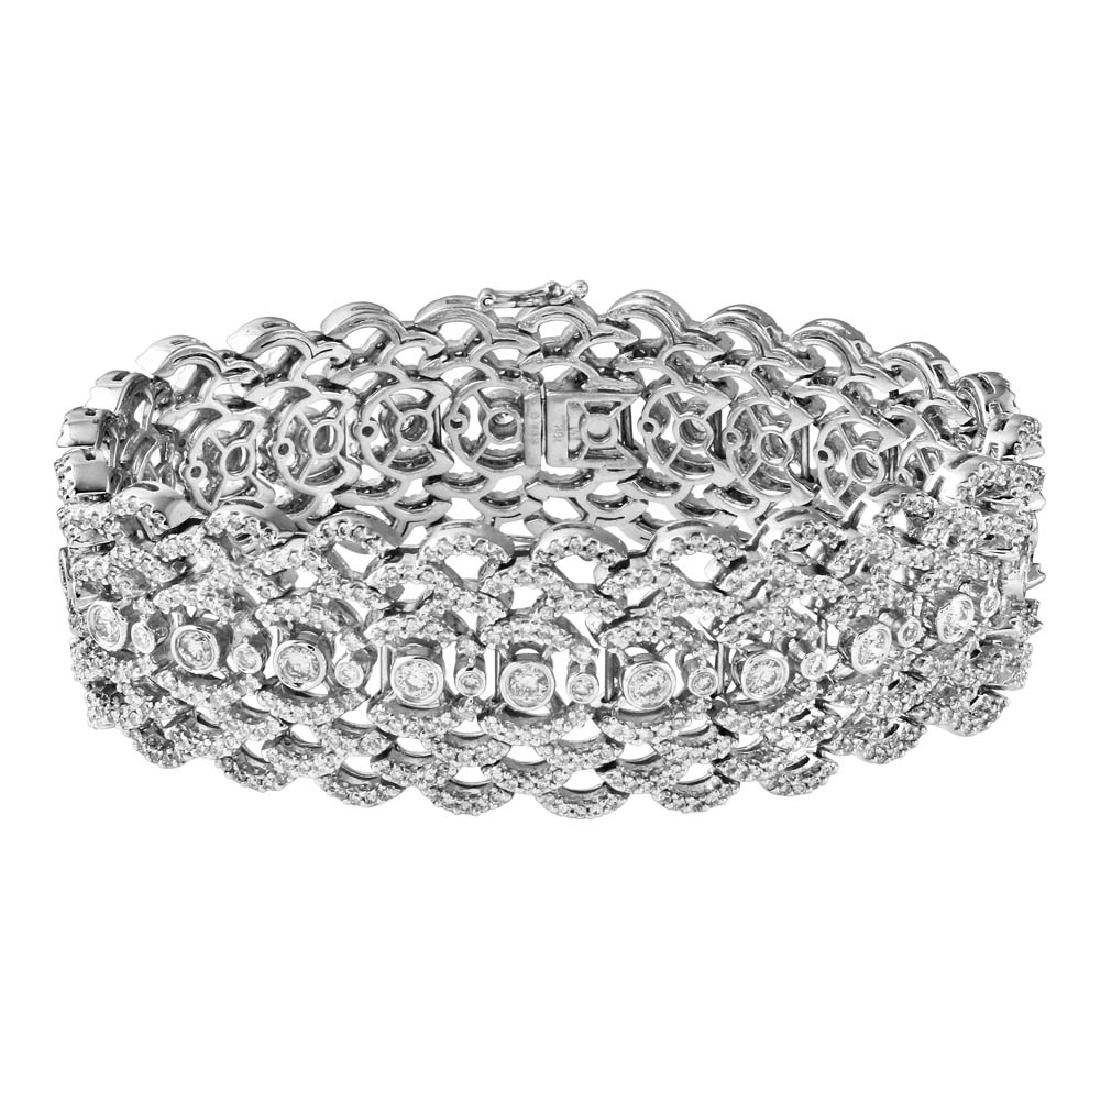 Genuine 7.46 TCW 18K White Gold Ladies Bracelet